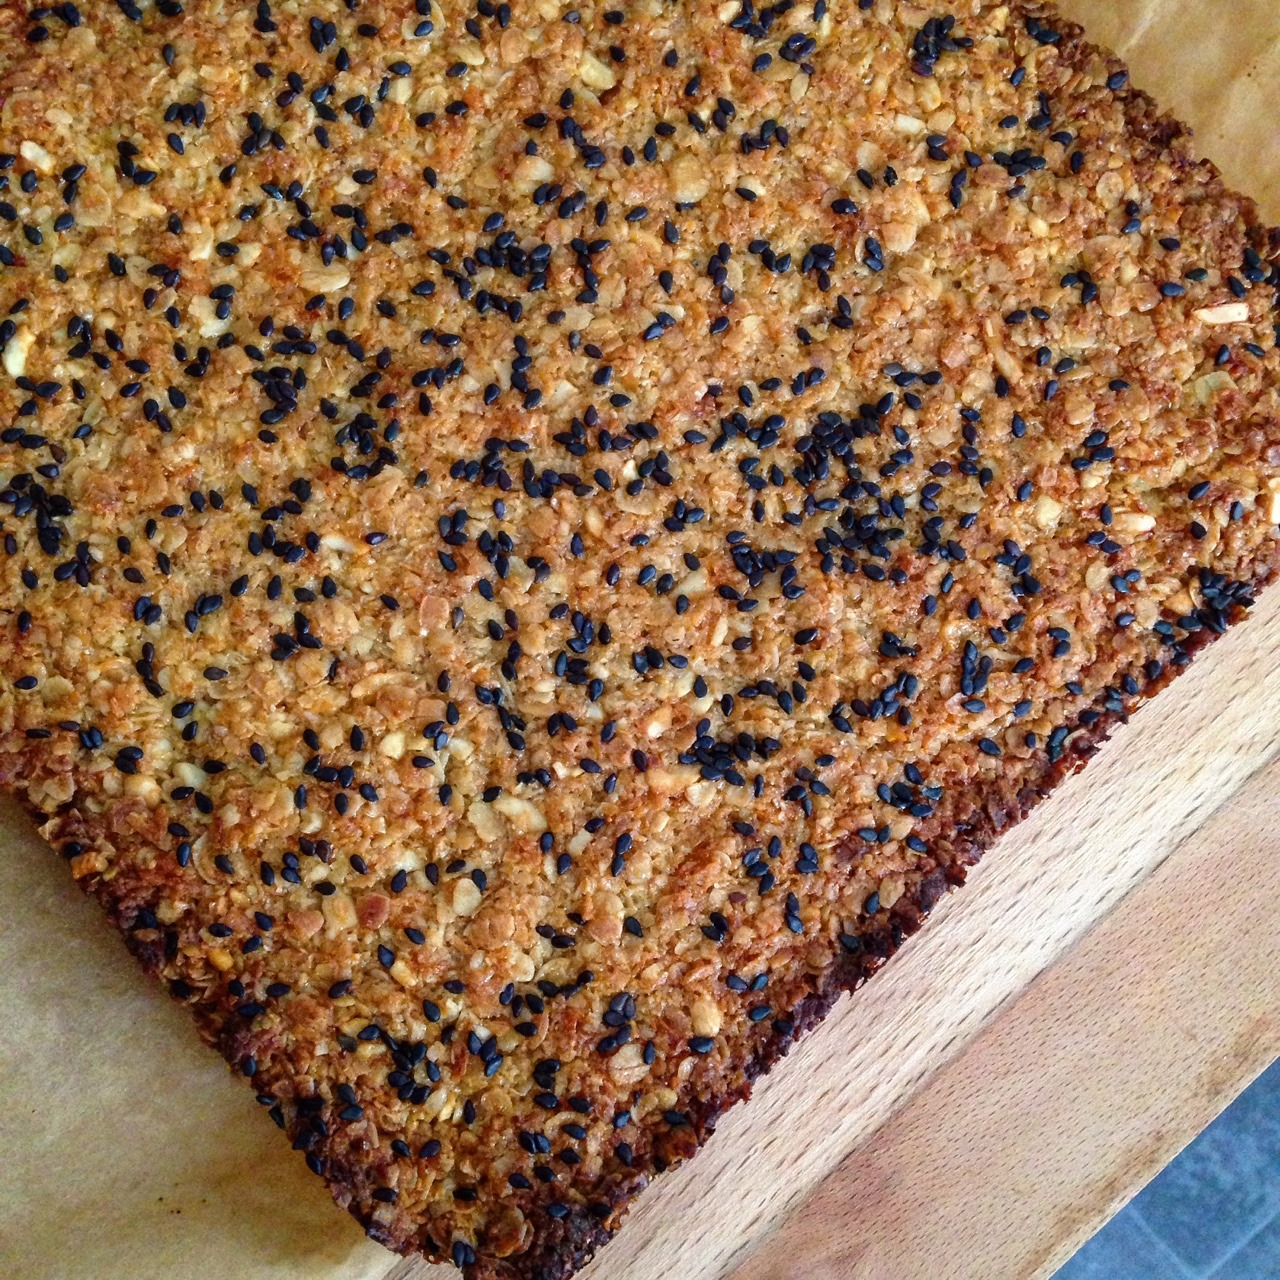 """Simple vegan flapjacks! Weigh out 250g of oats Melt together 3TBSP of Golden Syrup, 150g of soy butter and 125g brown sugar in a saucepan.  Mix both together and press into a lined 9"""" square tin. Bake on gas mark 6 until golden brown all over (15-20 mins) DONE!  Add whatever you want to jazz them up, I've used black sesame seeds and dedicated coconut here!  Don't forget to tag whatleilaeats in your creations!  Love Leila xx"""